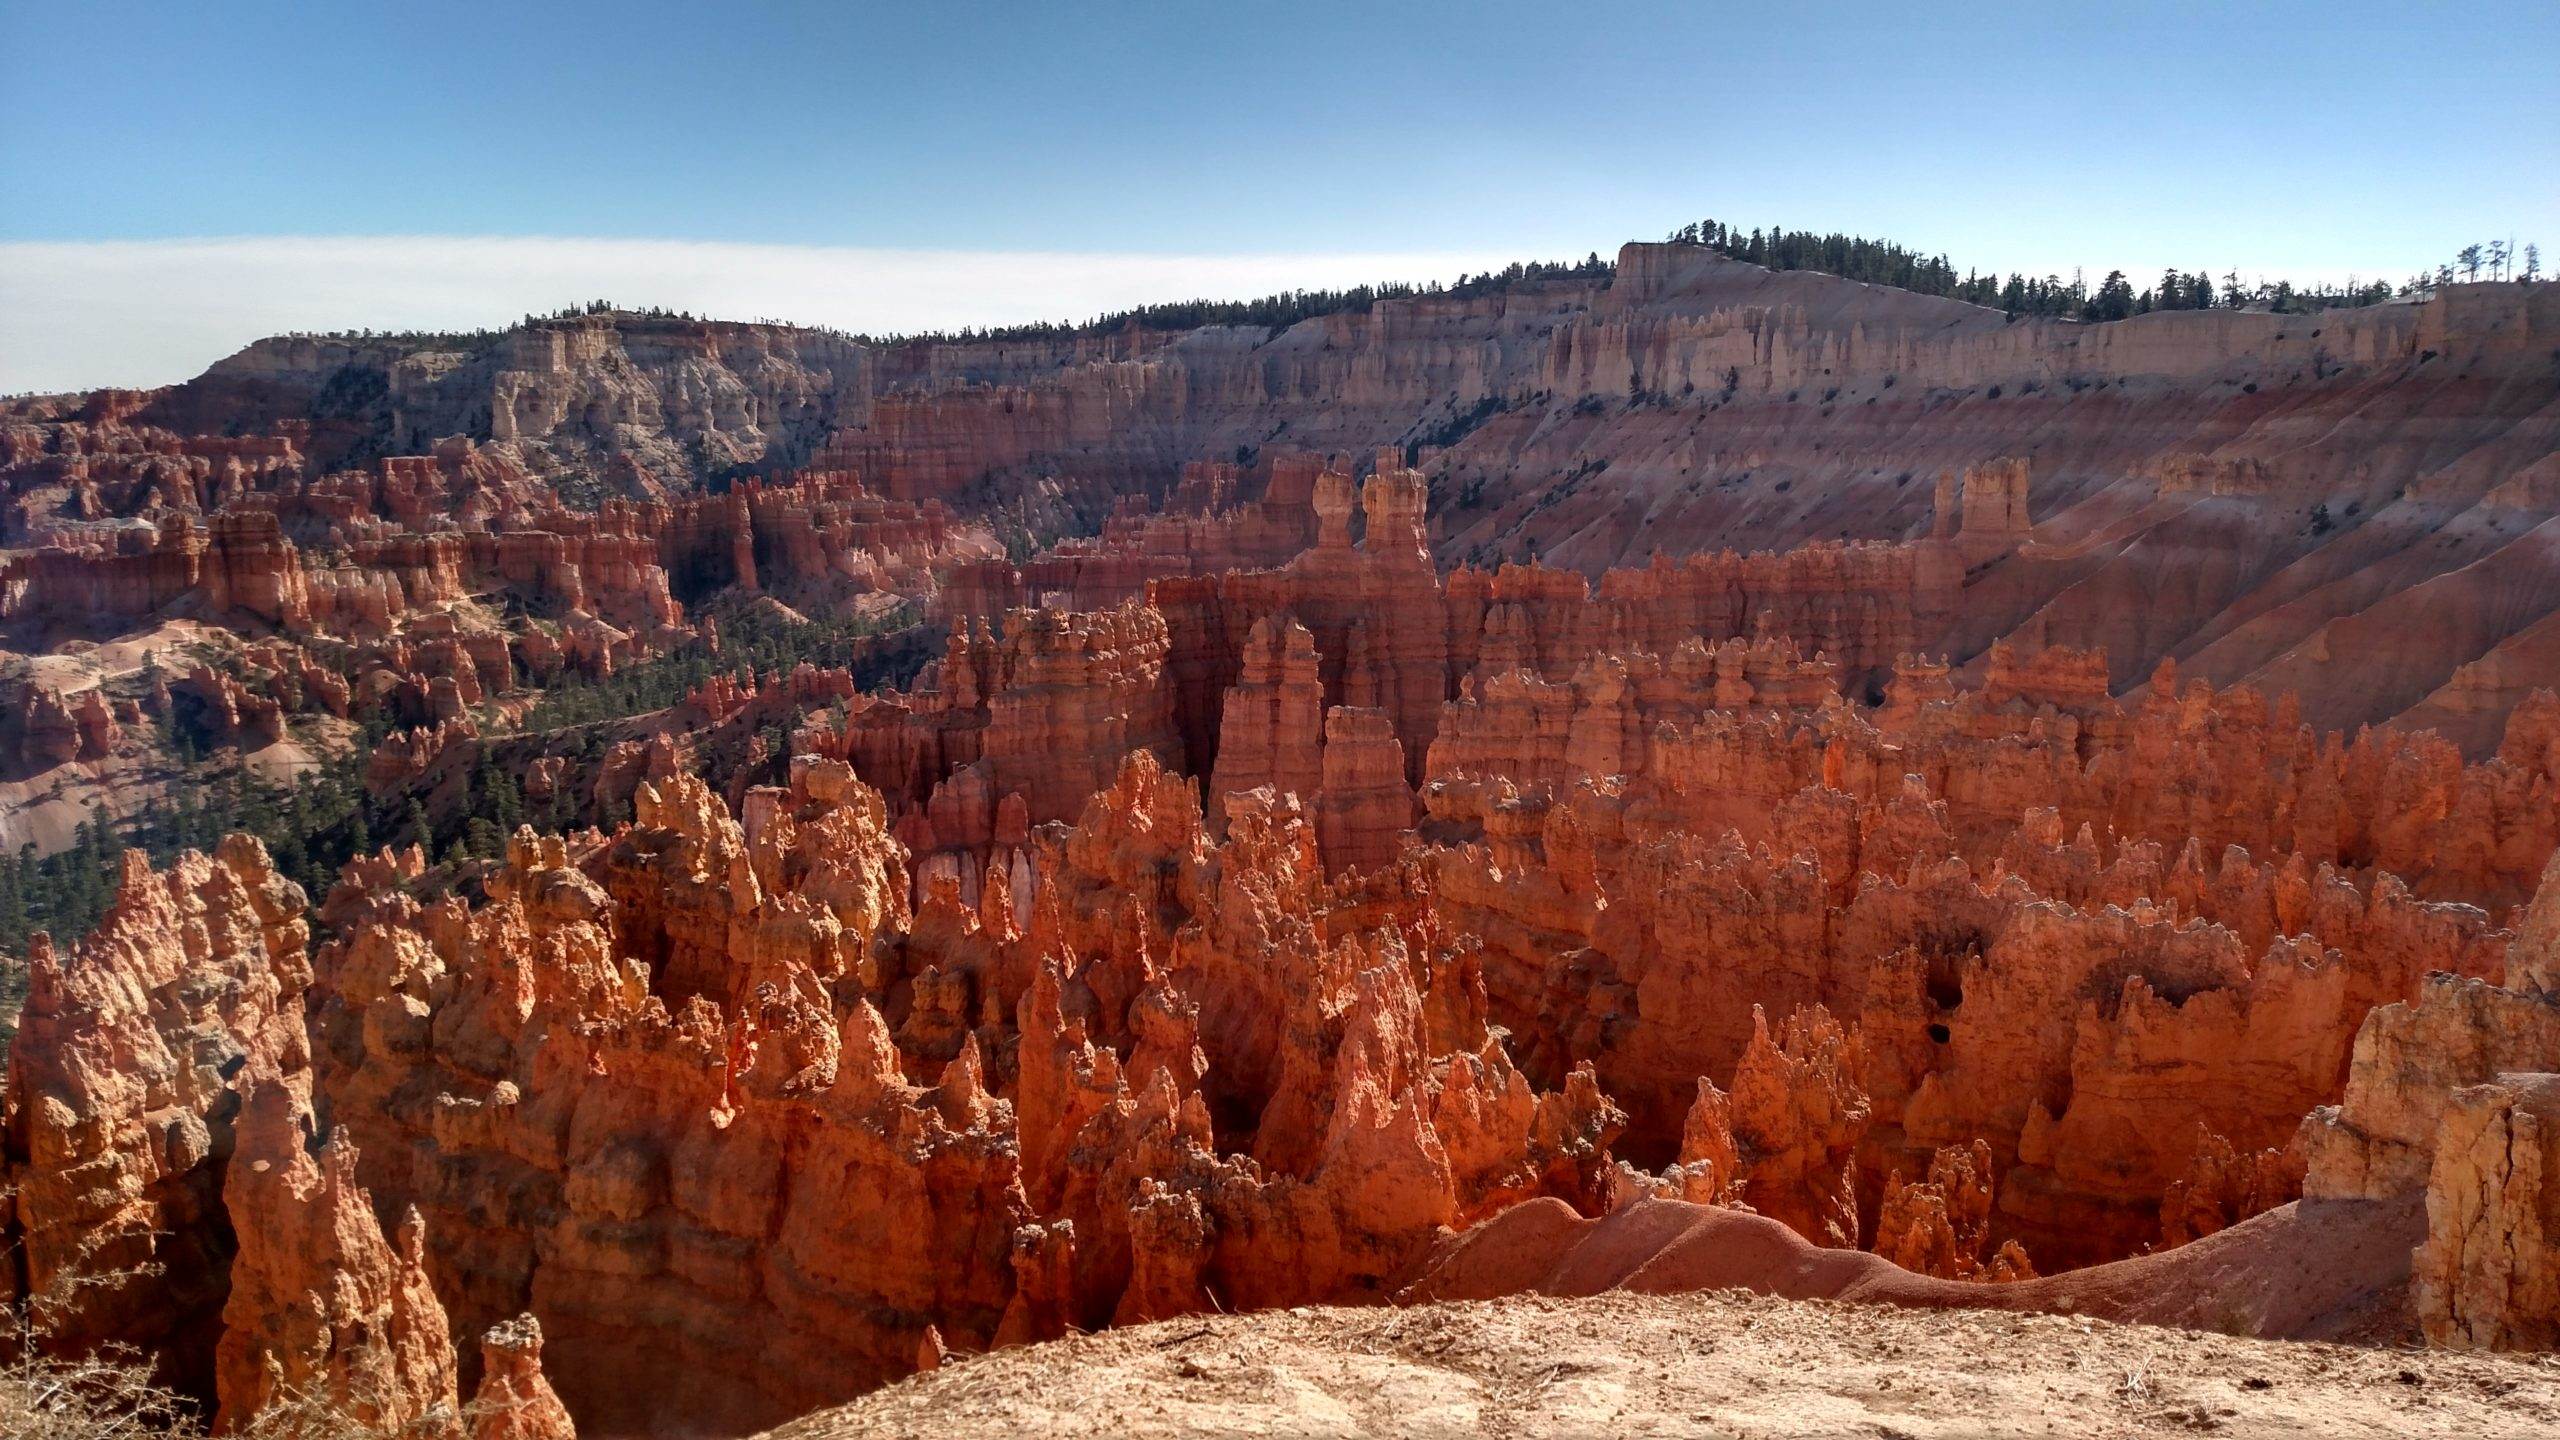 Bryce Canyon in Utah with orange rock formations